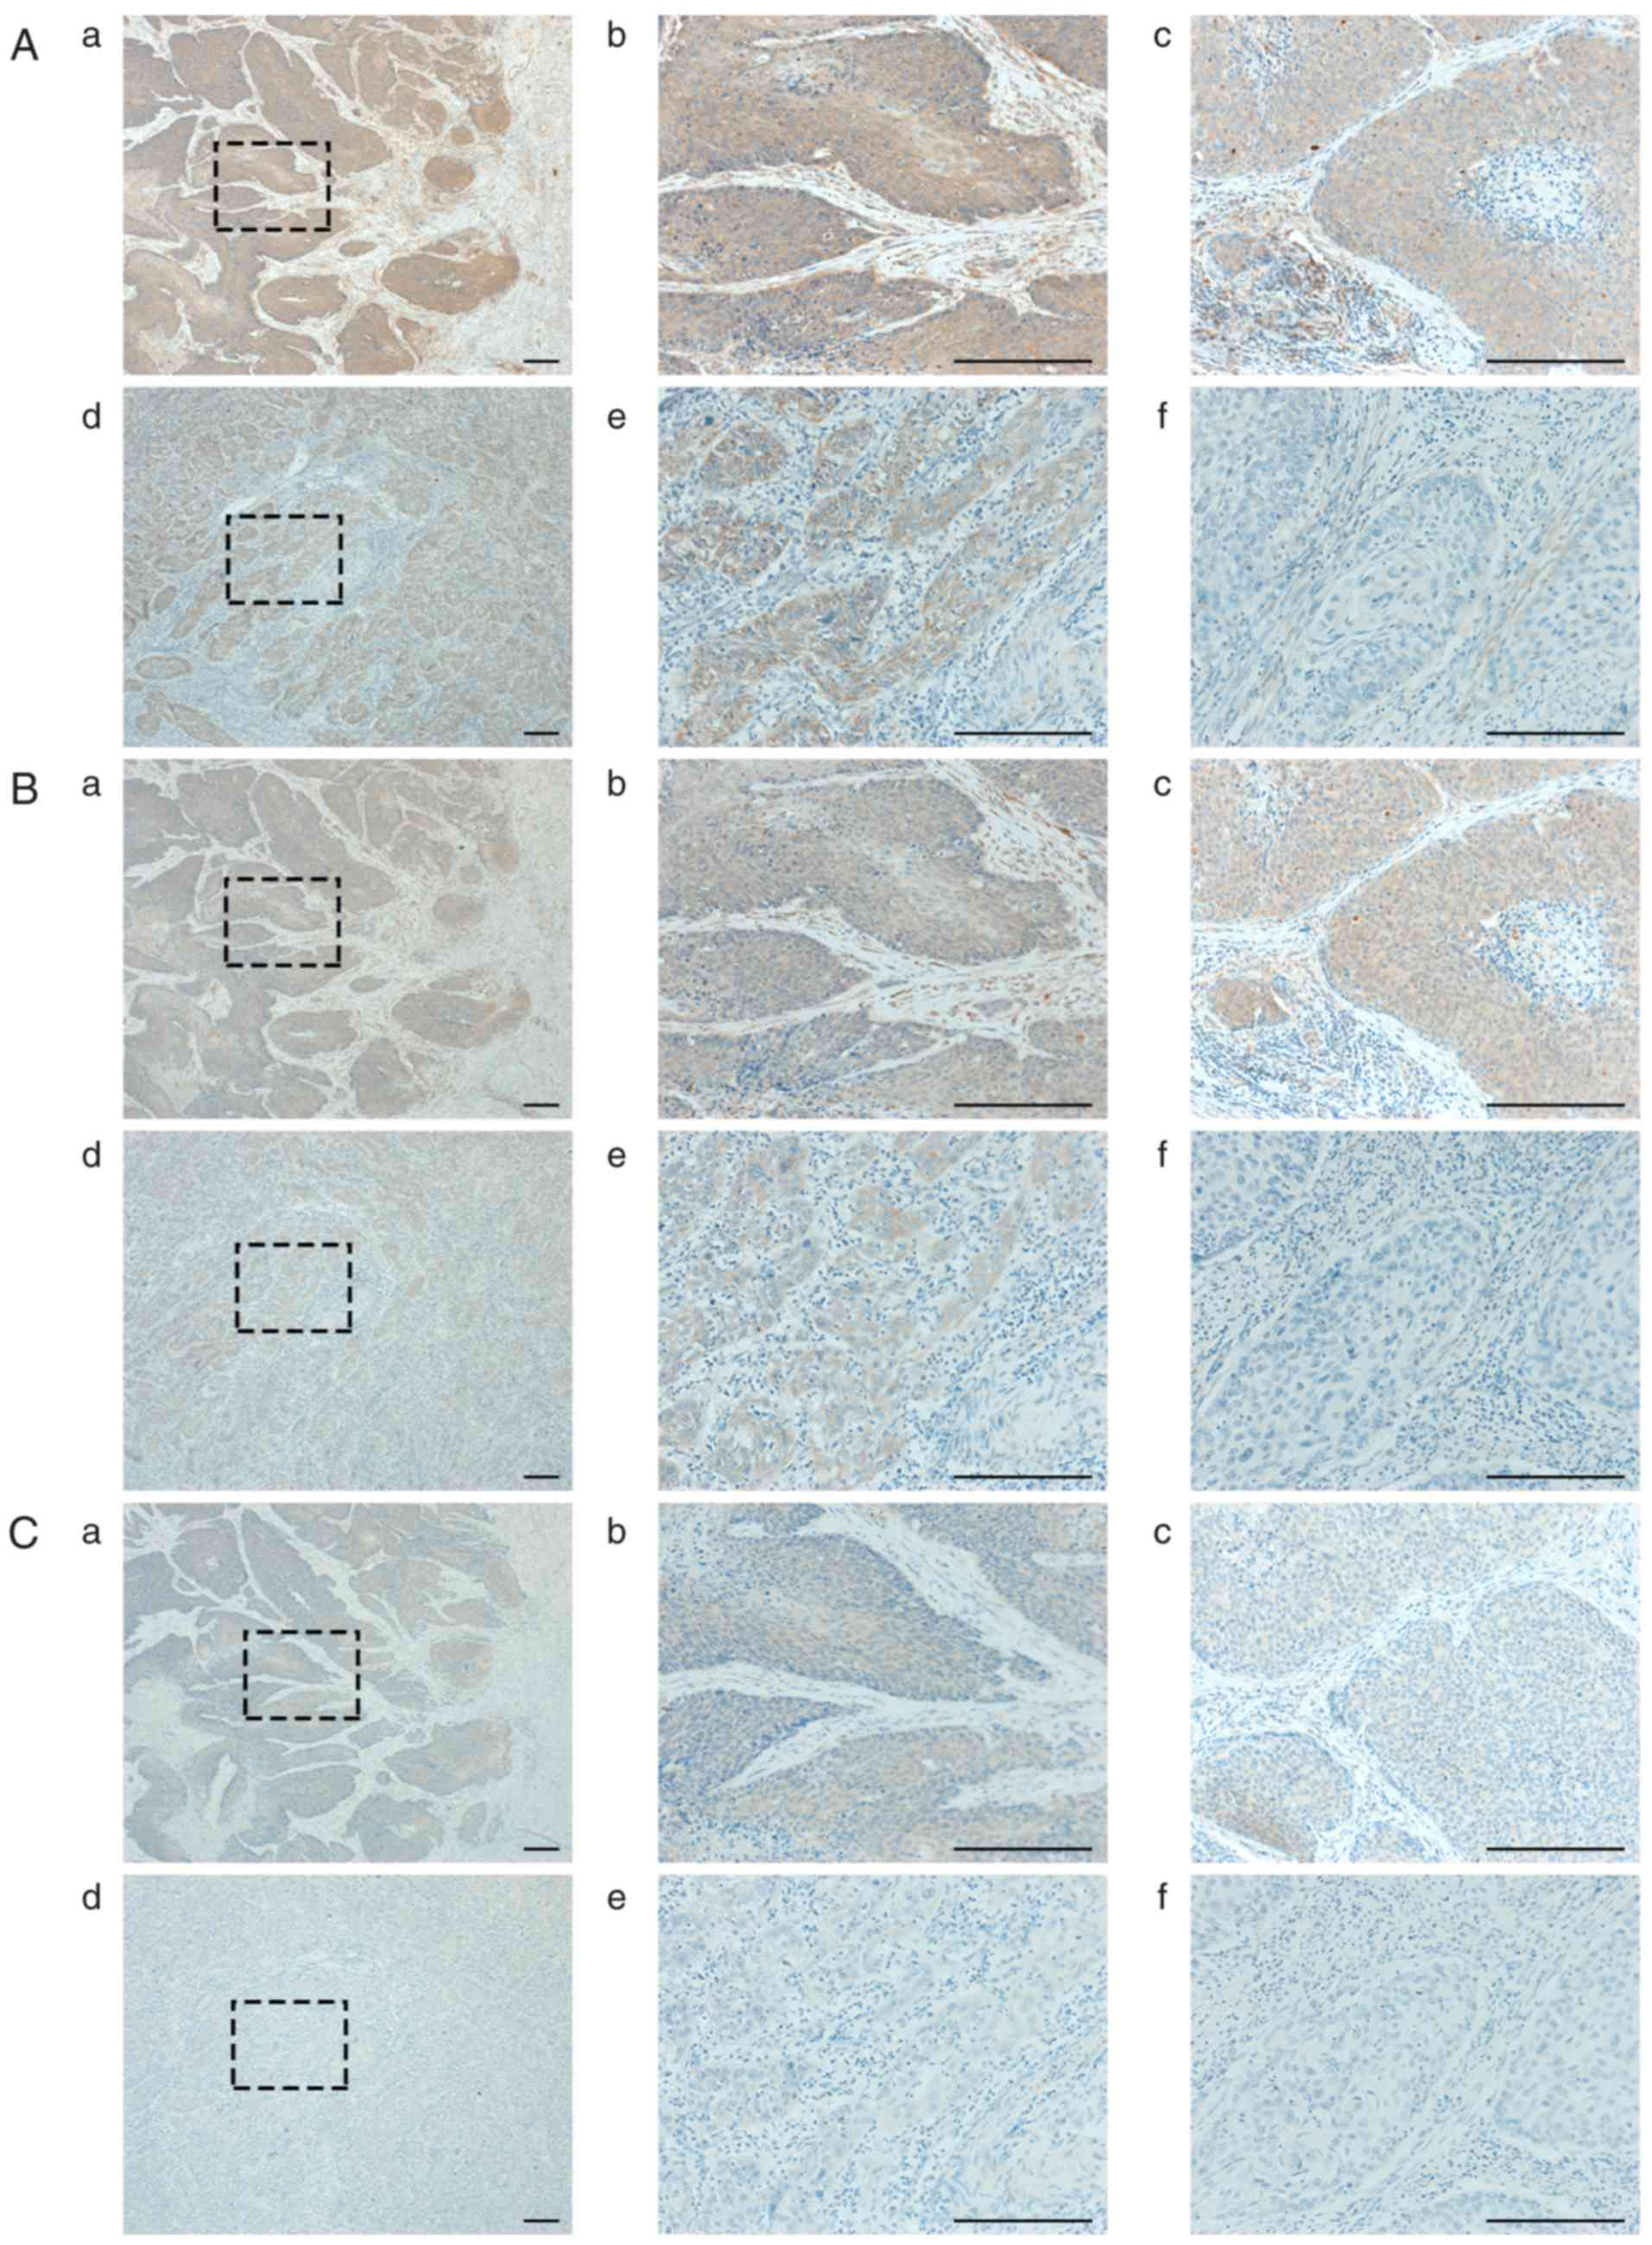 The upregulated expression of vascular endothelial growth